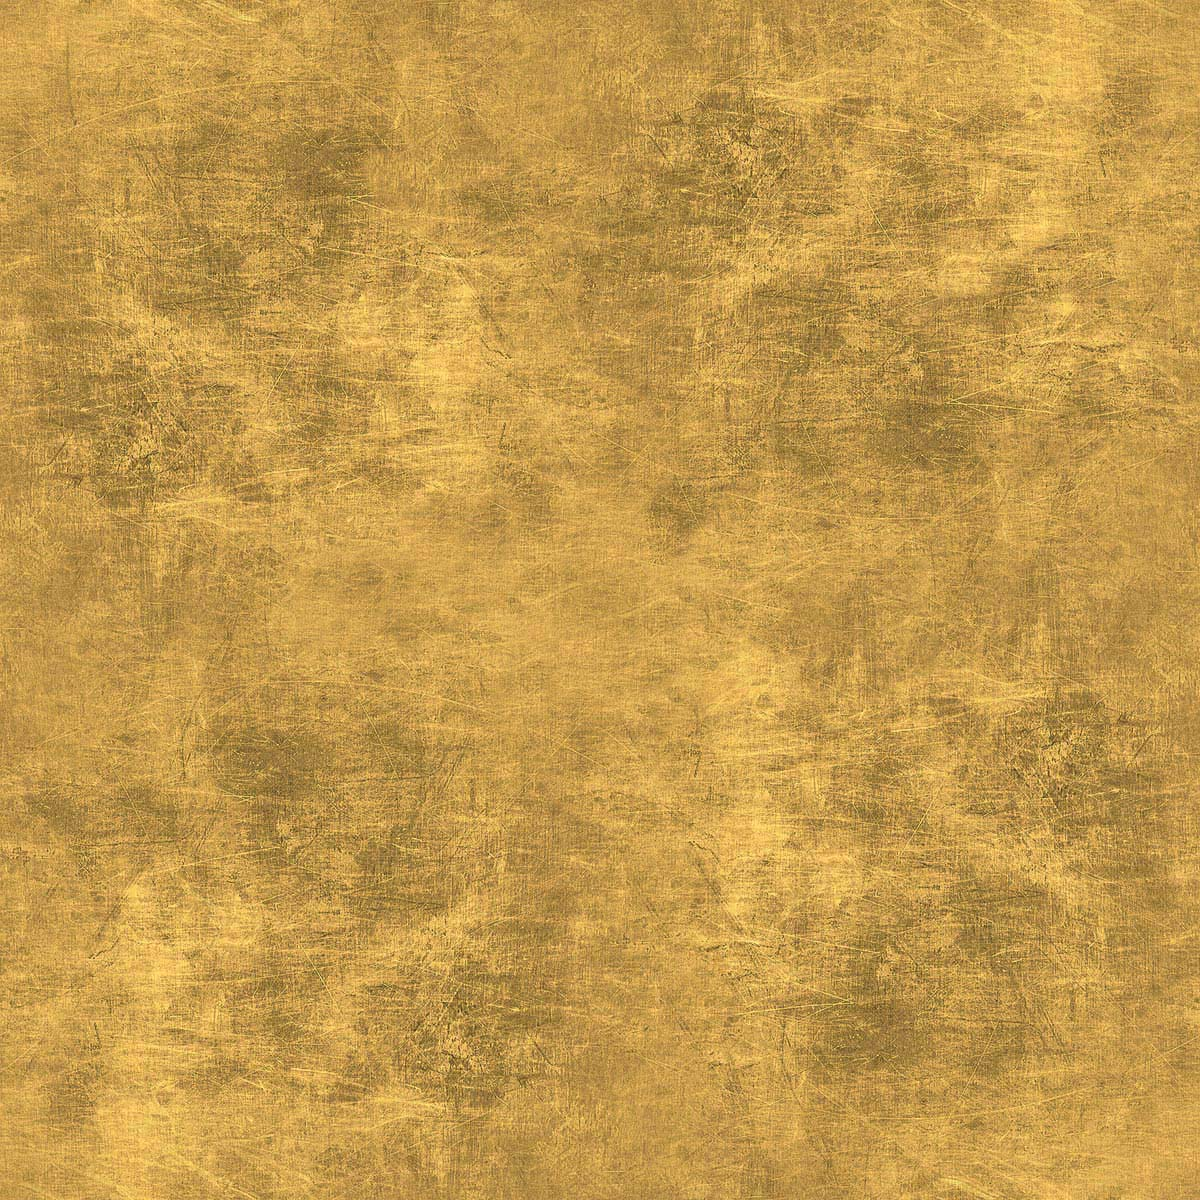 Golden texture paint